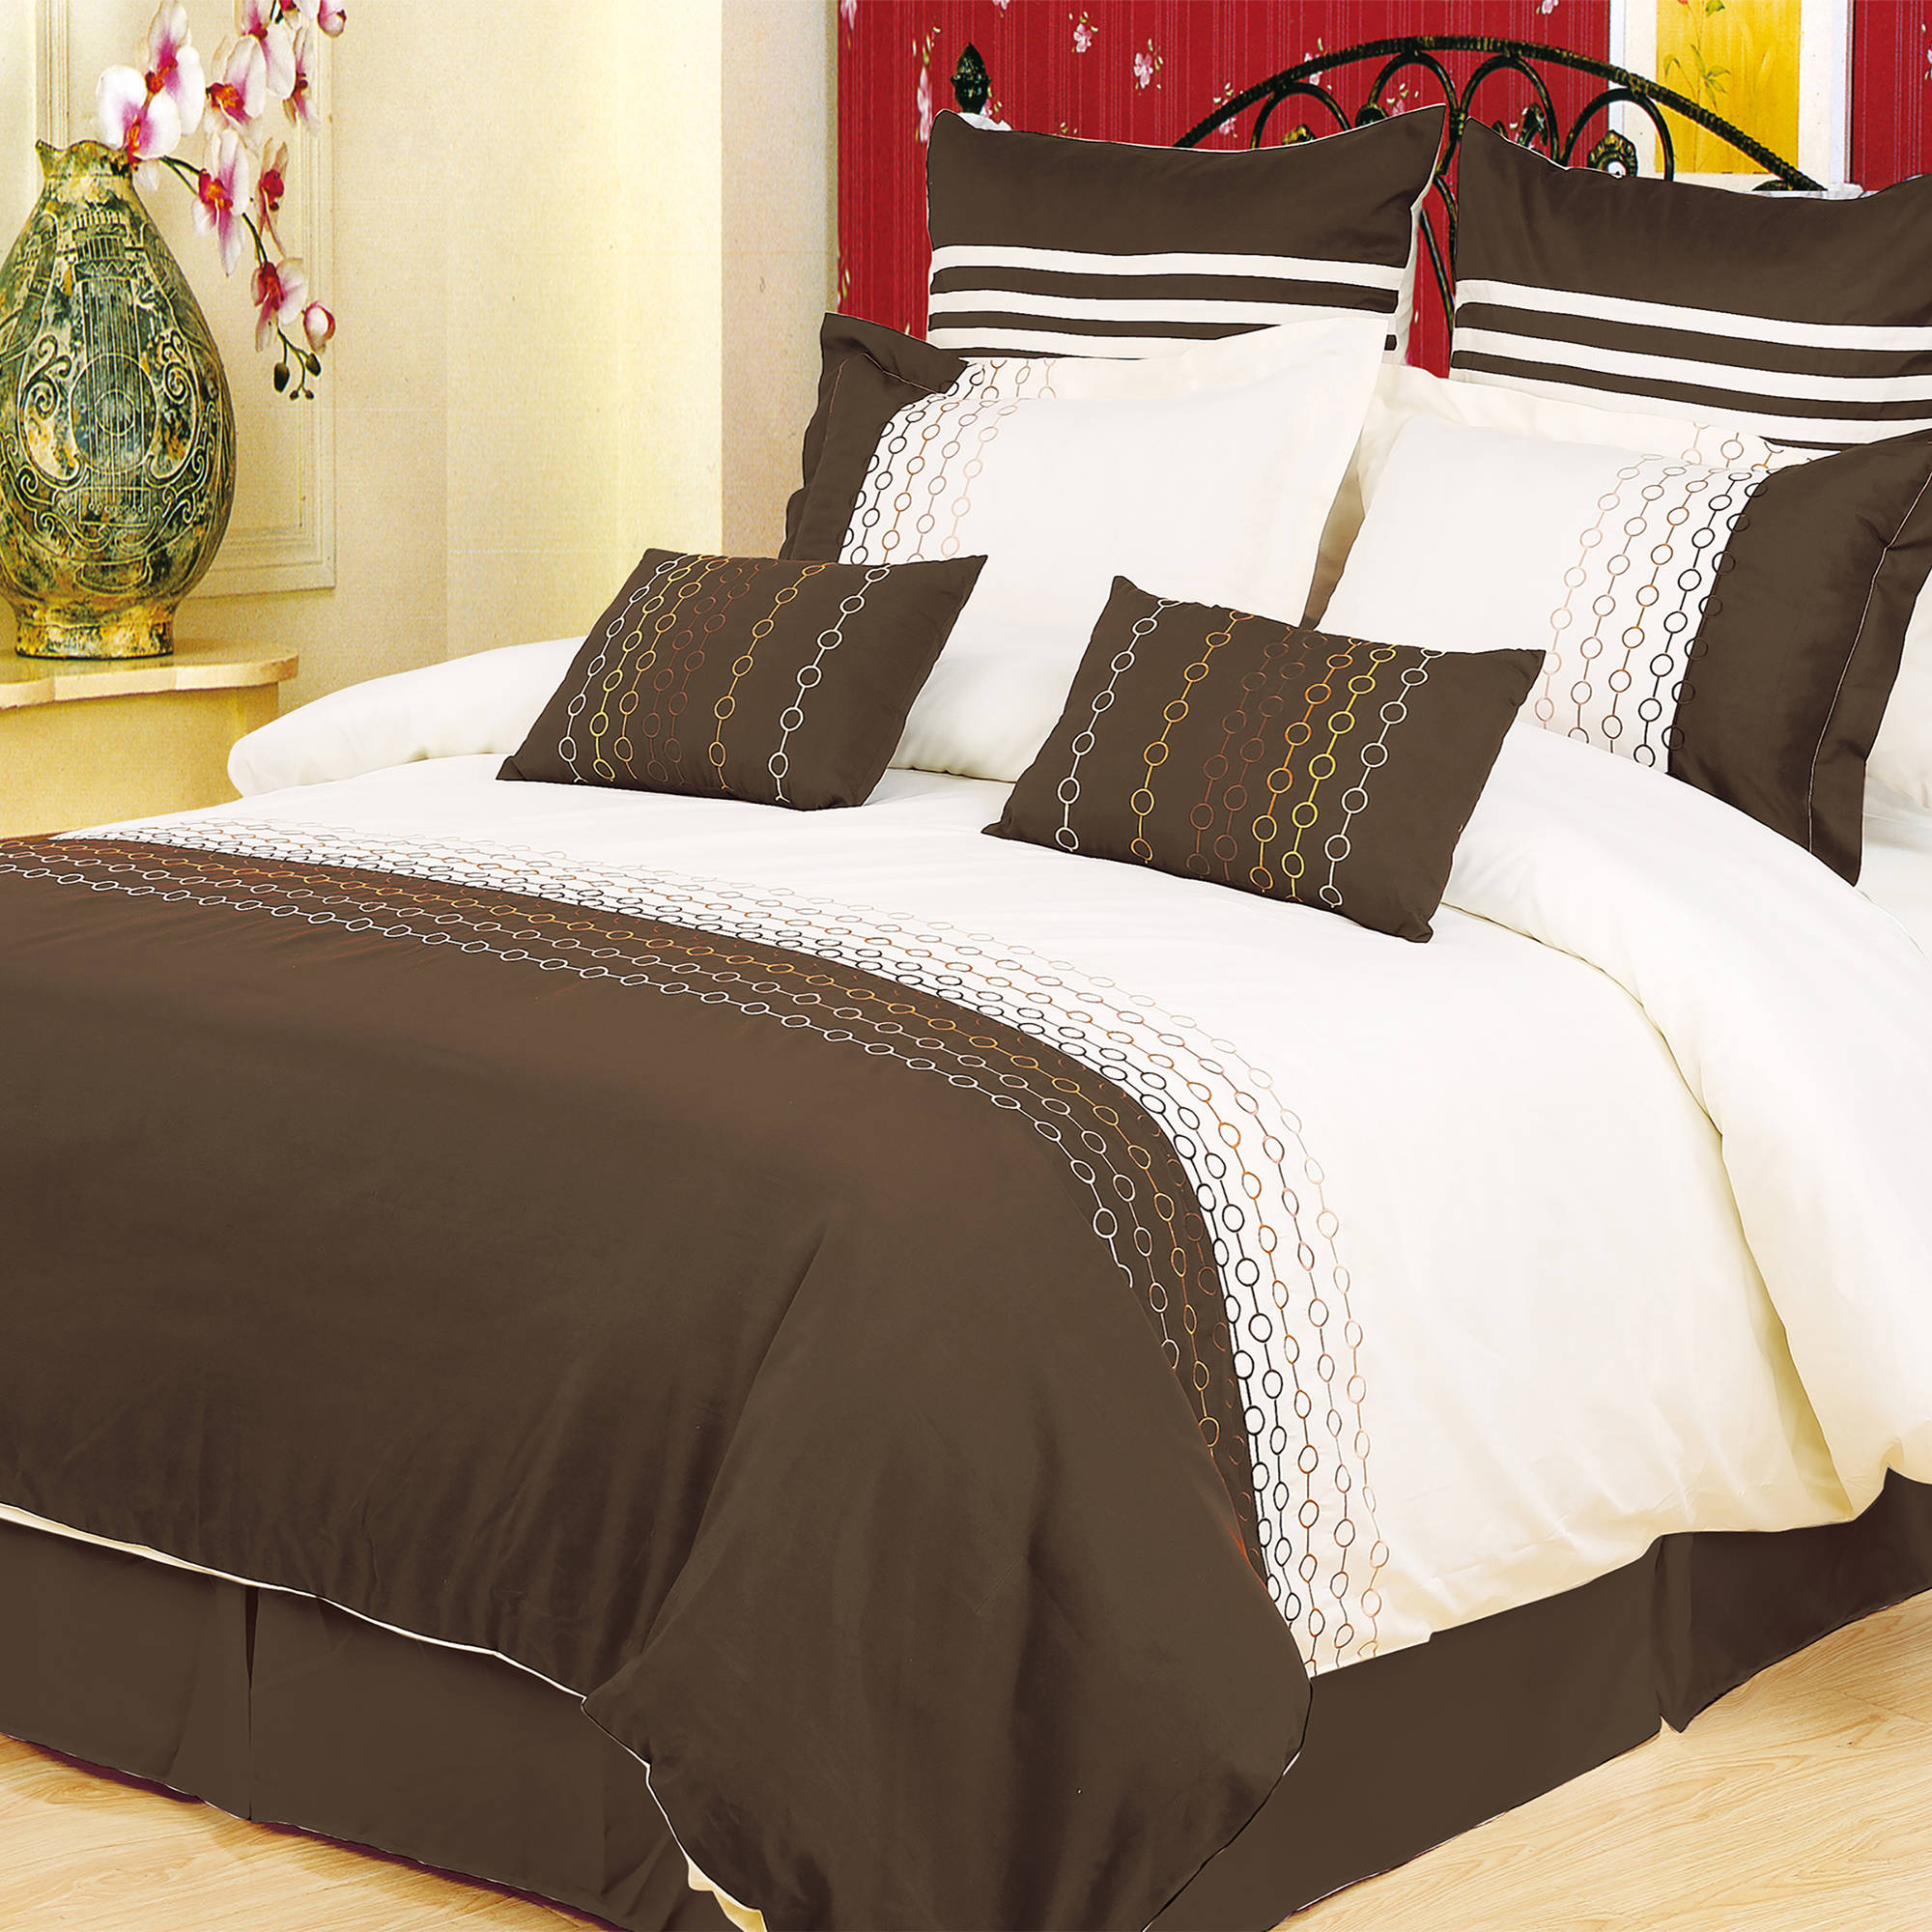 Superior Vanessa 7-Piece Duvet Cover Set